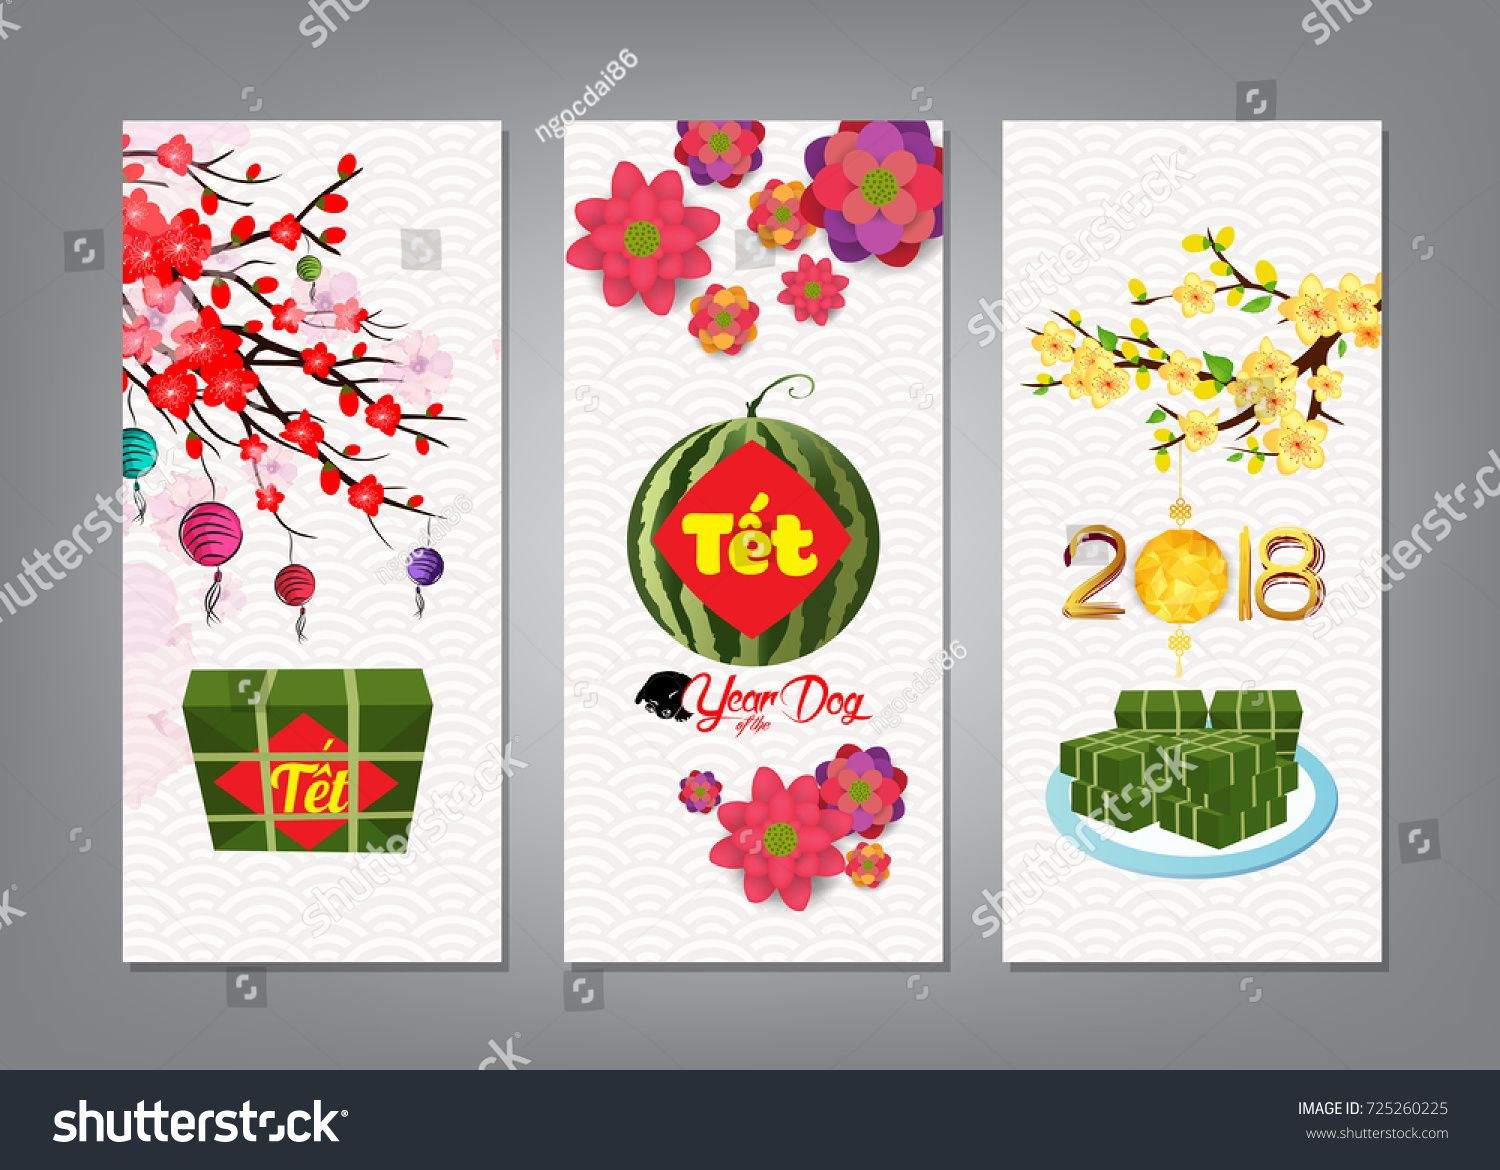 Cooked square glutinous rice cake and blossom, banner